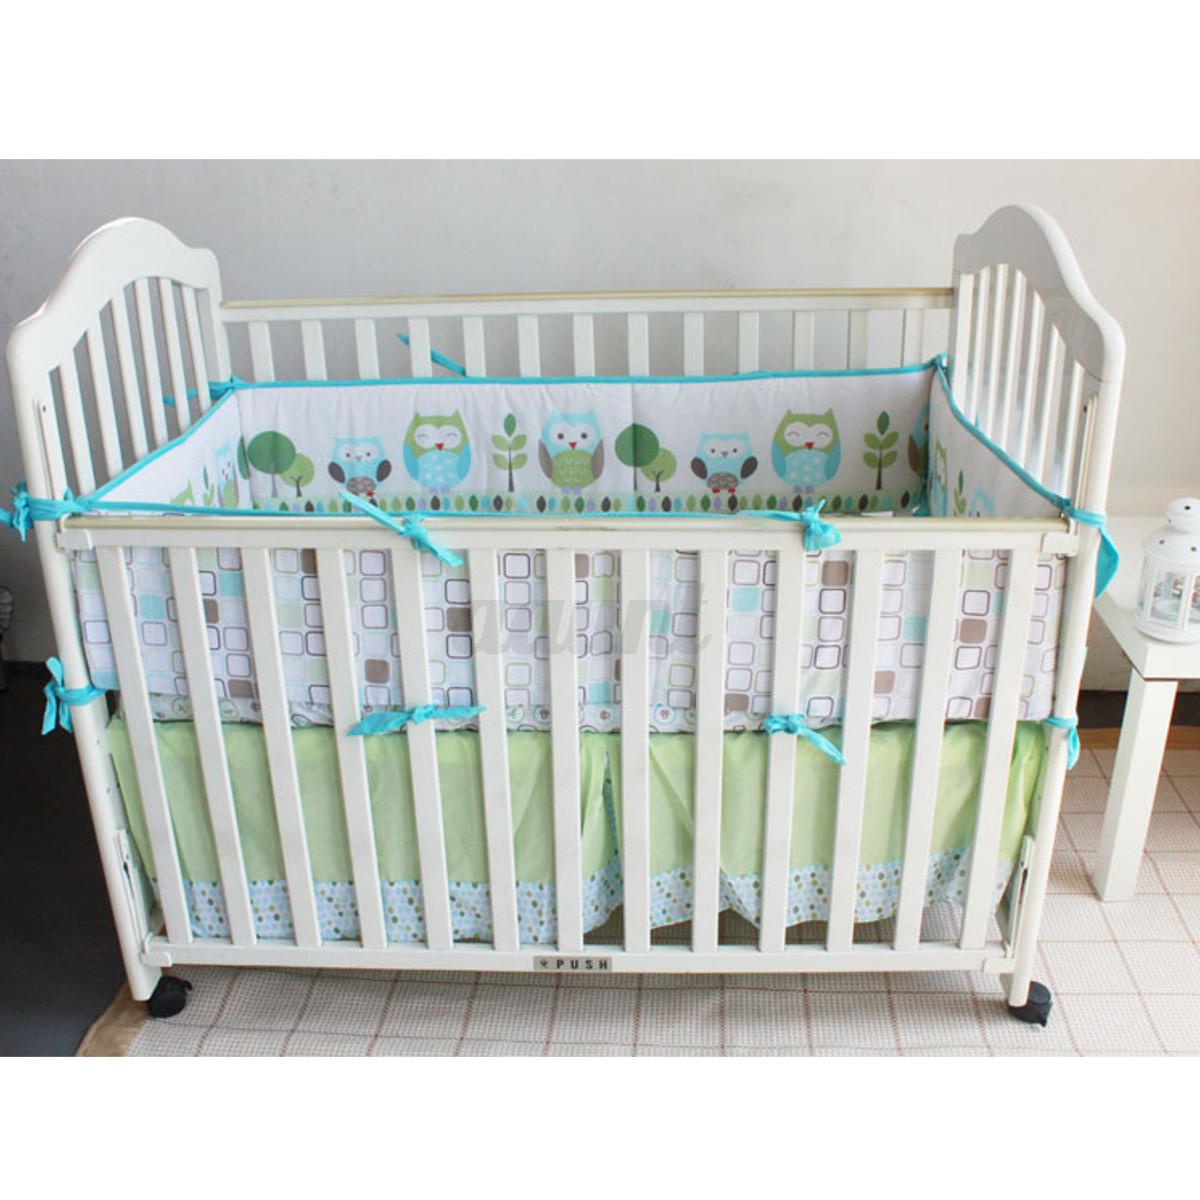 Is it safe to use bumpers on my baby's crib? | BabyCenter